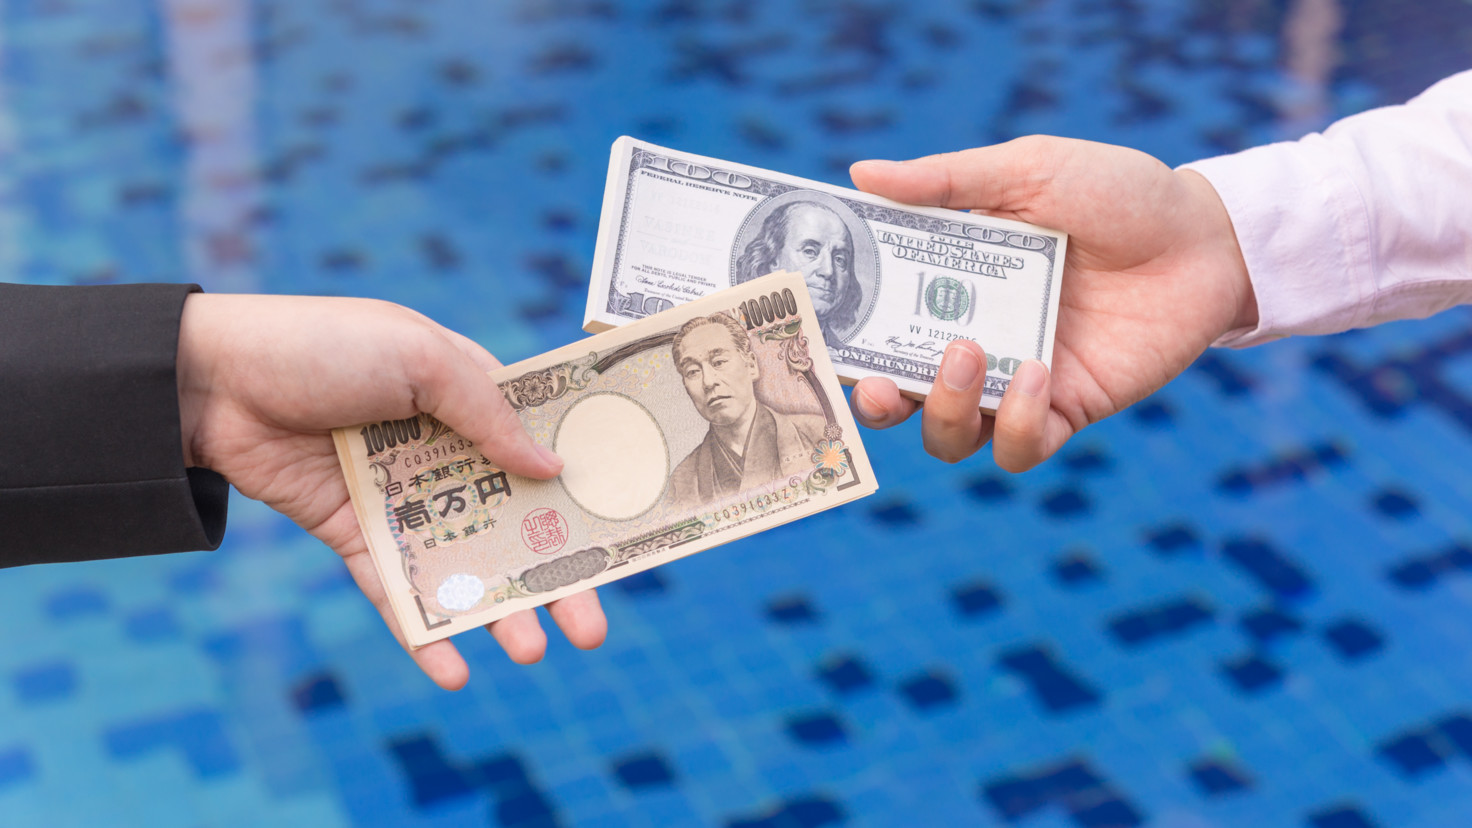 Usd To Jpy Forecast For 2020 Currency